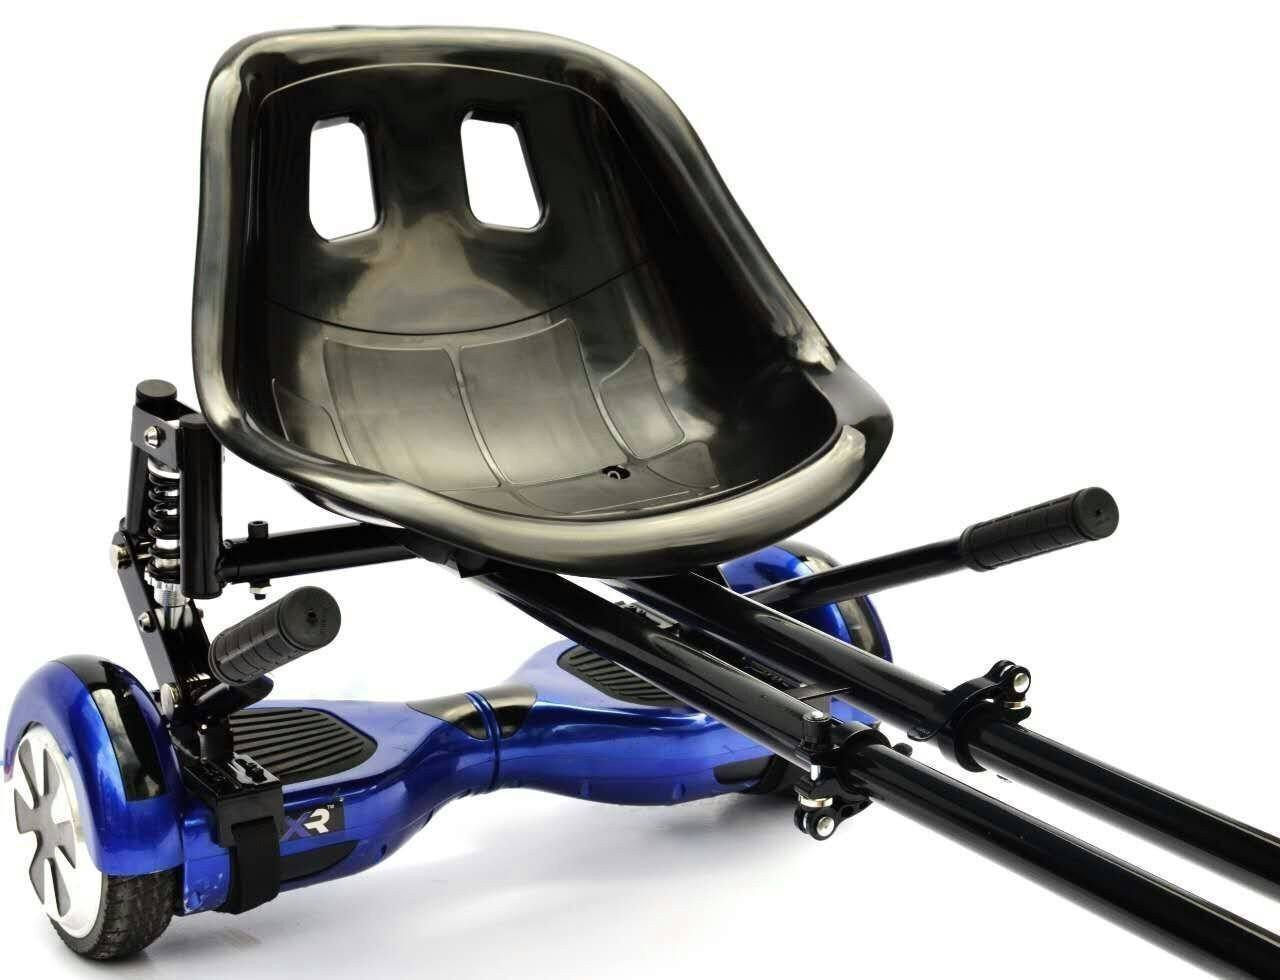 SUSPENSION HOVERKART - FITS 6.5